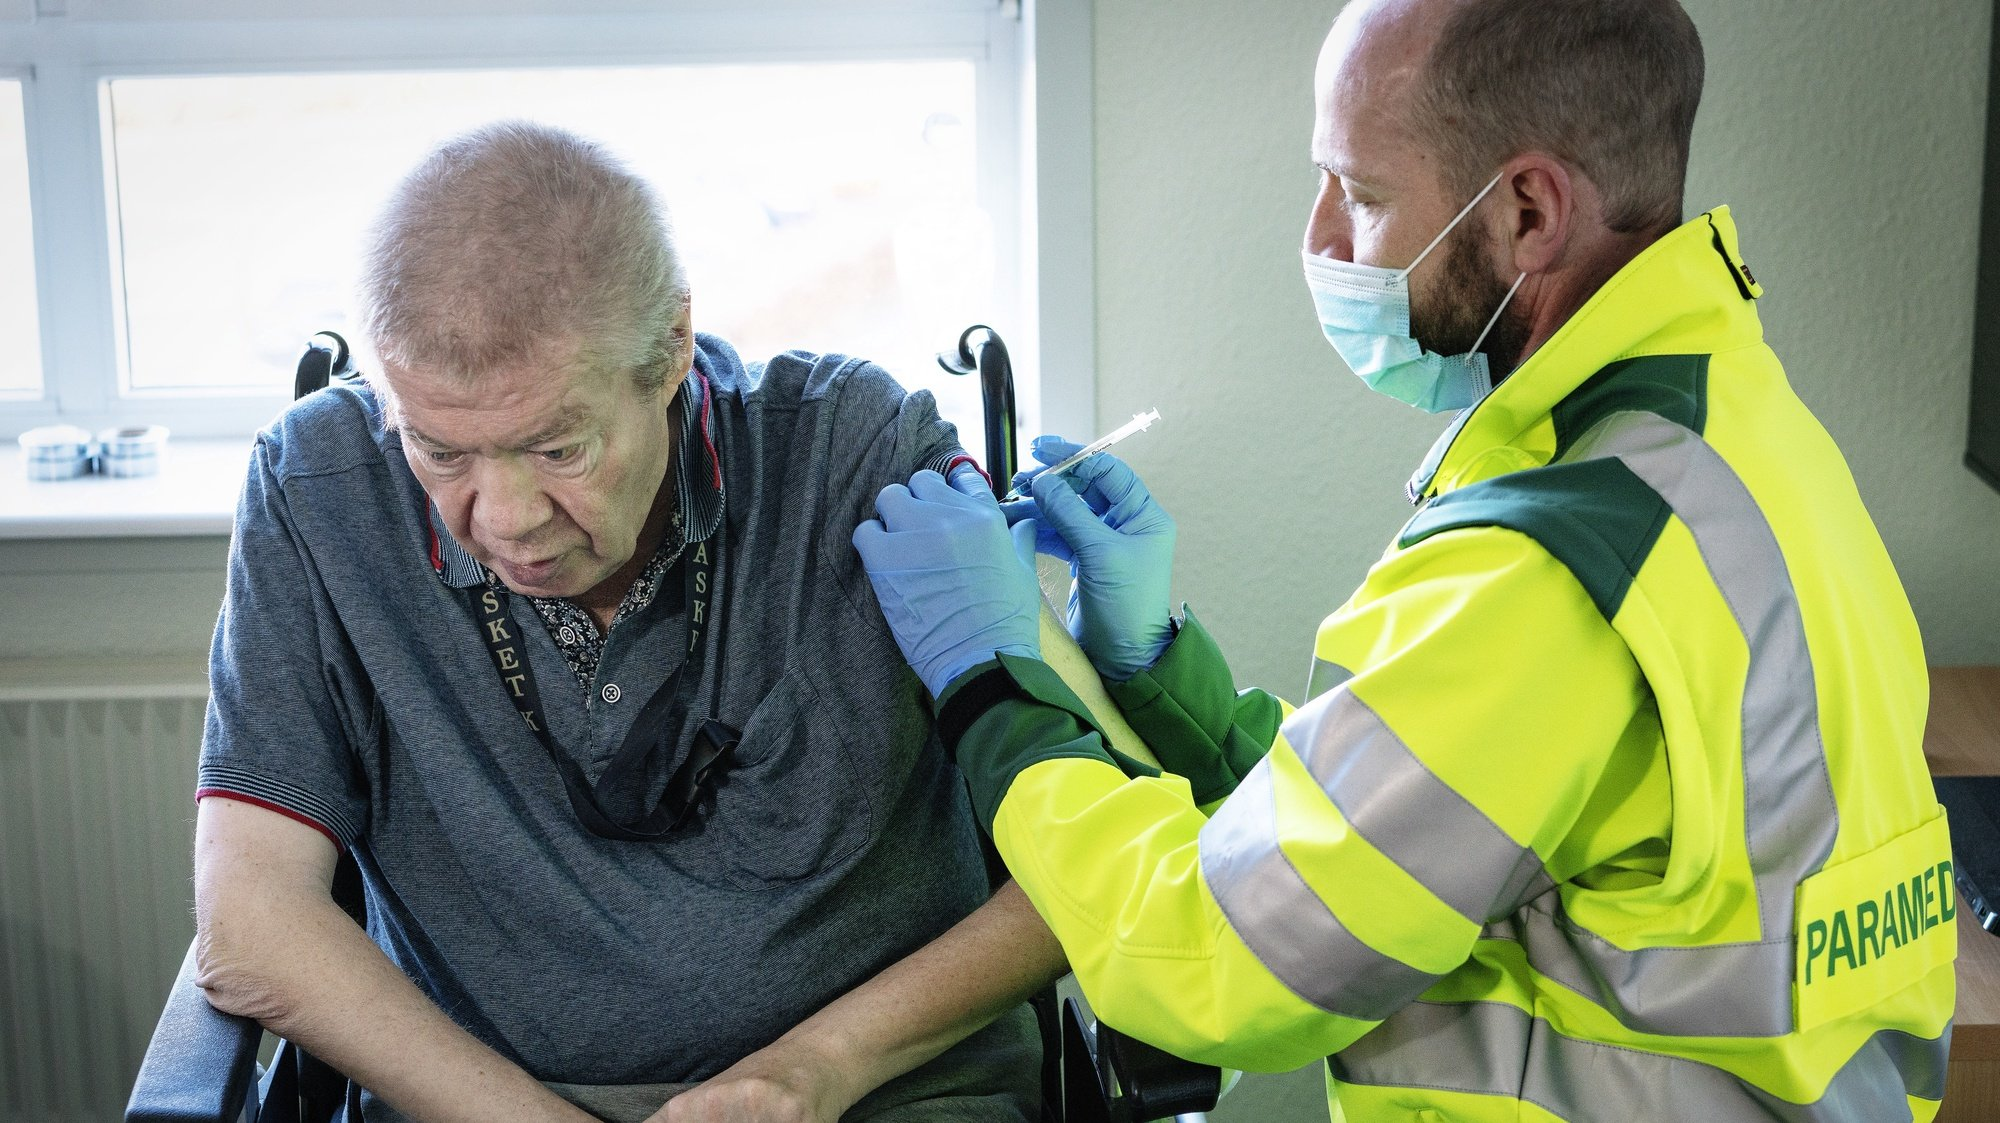 epa09053200 A 67-year-old Aage Steen Jensen, who is a kidney patient, is vaccinated in his own home in Aalborg, Denmark, 05 March 2021. Elderly, over 65, who cannot be transported to a coronavirus vaccination site, receive both practical help and personal care. On 05 March, the first seven persons from Northern Jutland will receive the first vaccinations against Covid-19 in their own homes. Paramedics from the North Jutland Region will perform the vaccinations.  EPA/BO AMSTRUP  DENMARK OUT